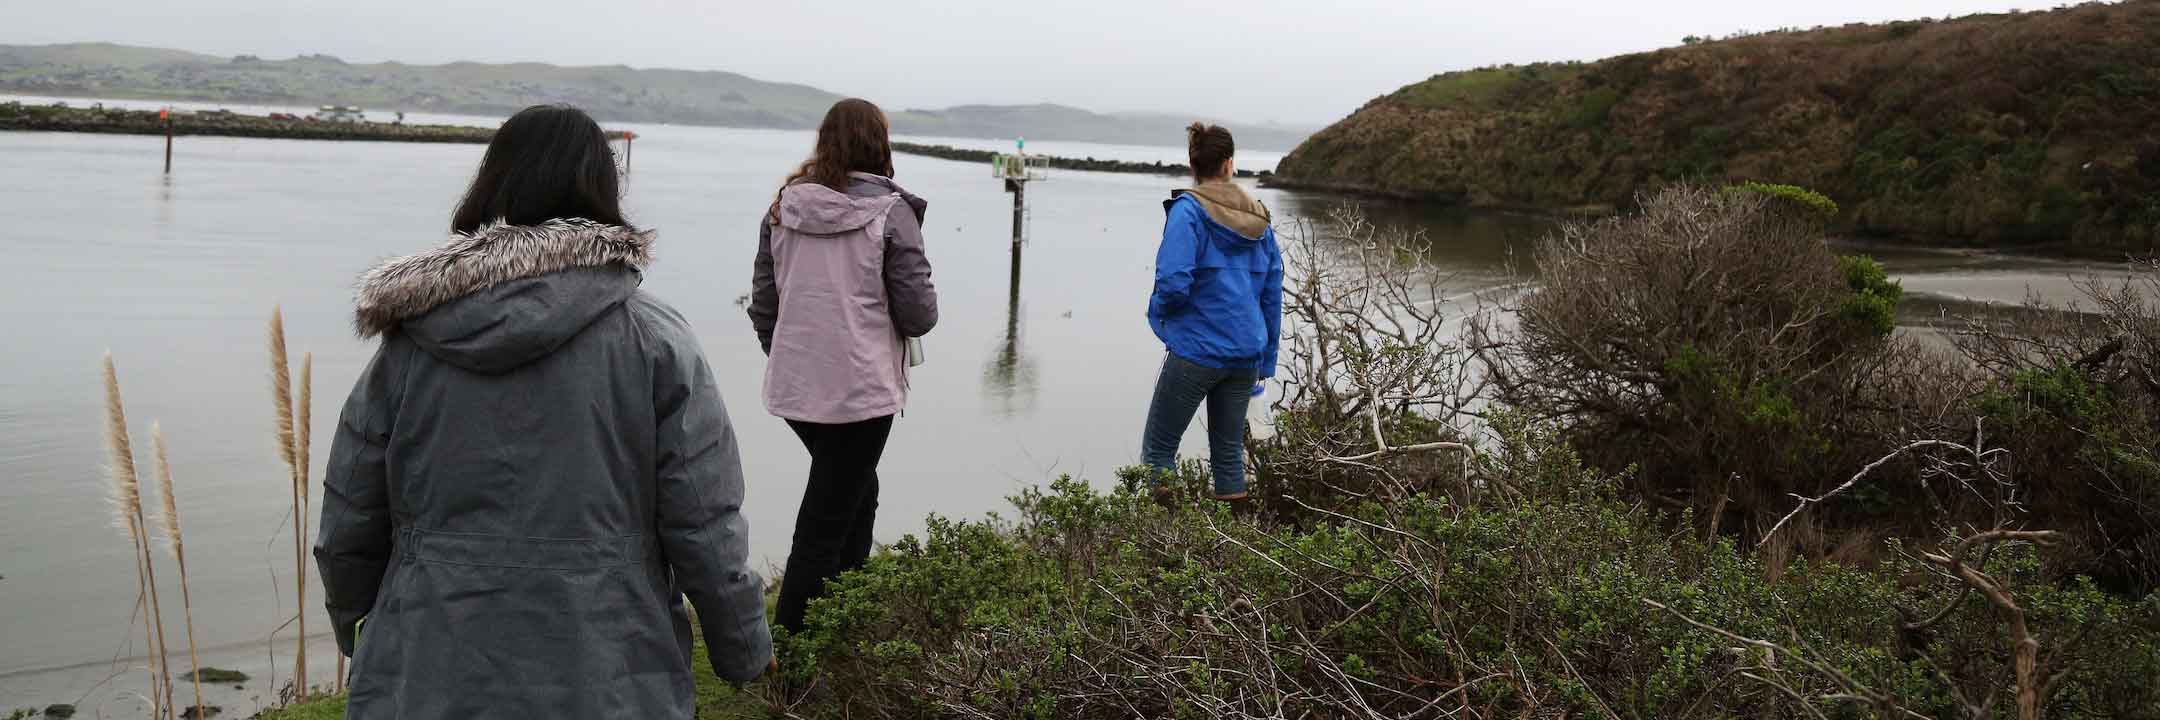 Students hike behind a researcher on the rocky shoreline at Bodega Bay, California